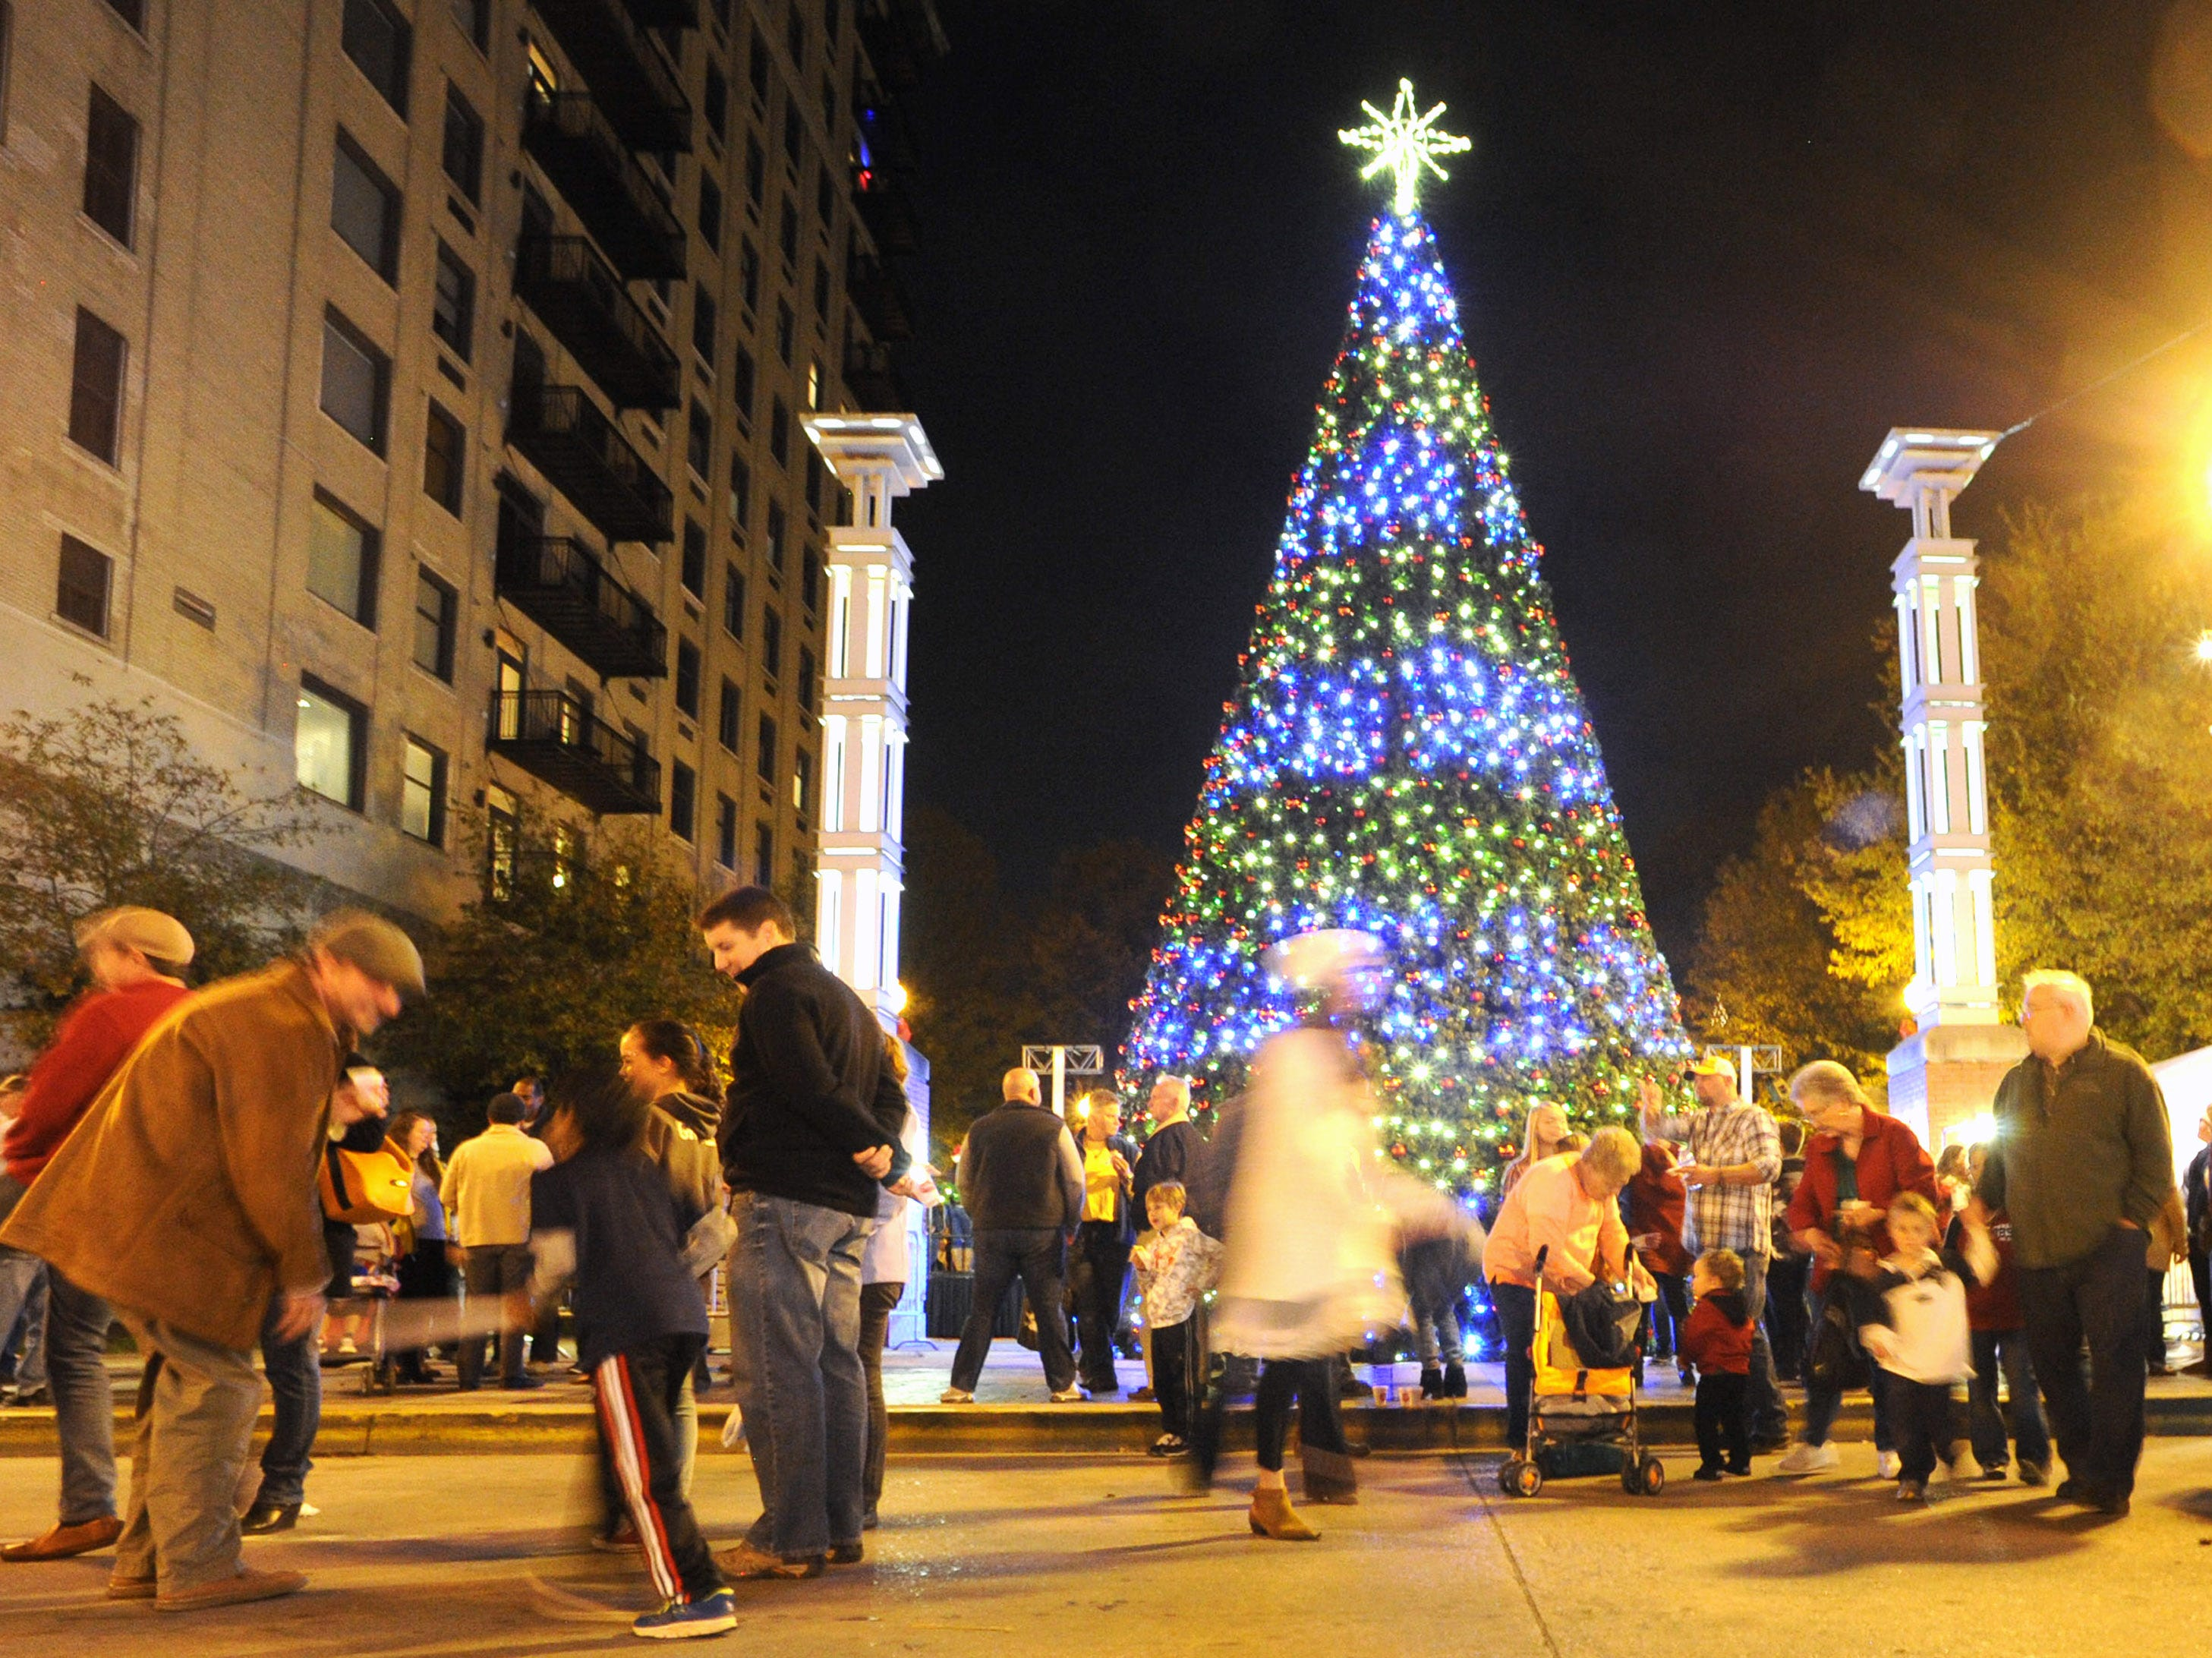 Pedestrians spill onto Gay St. following the lighting of the city's new 42-foot-tall LED Christmas tree in Krutch Park on Friday, Nov. 27, 2015.